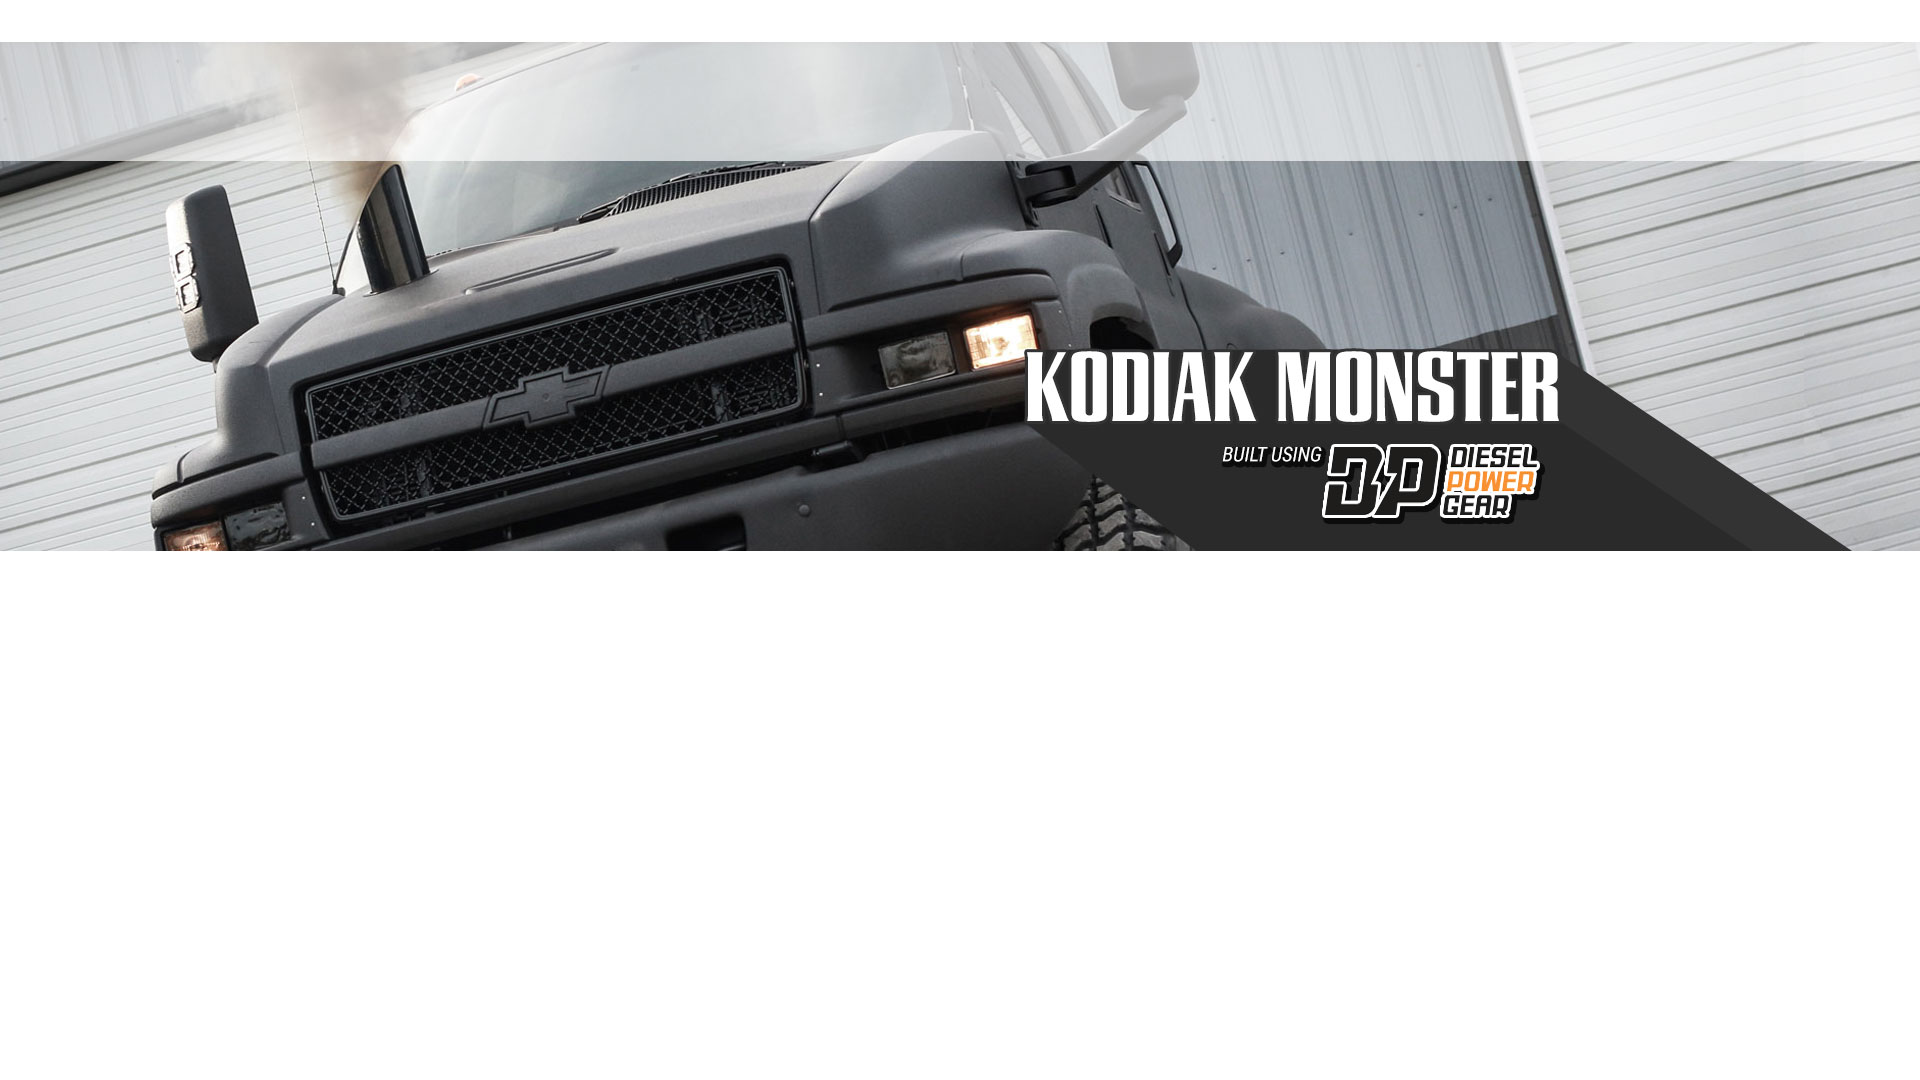 Kodiak Monster